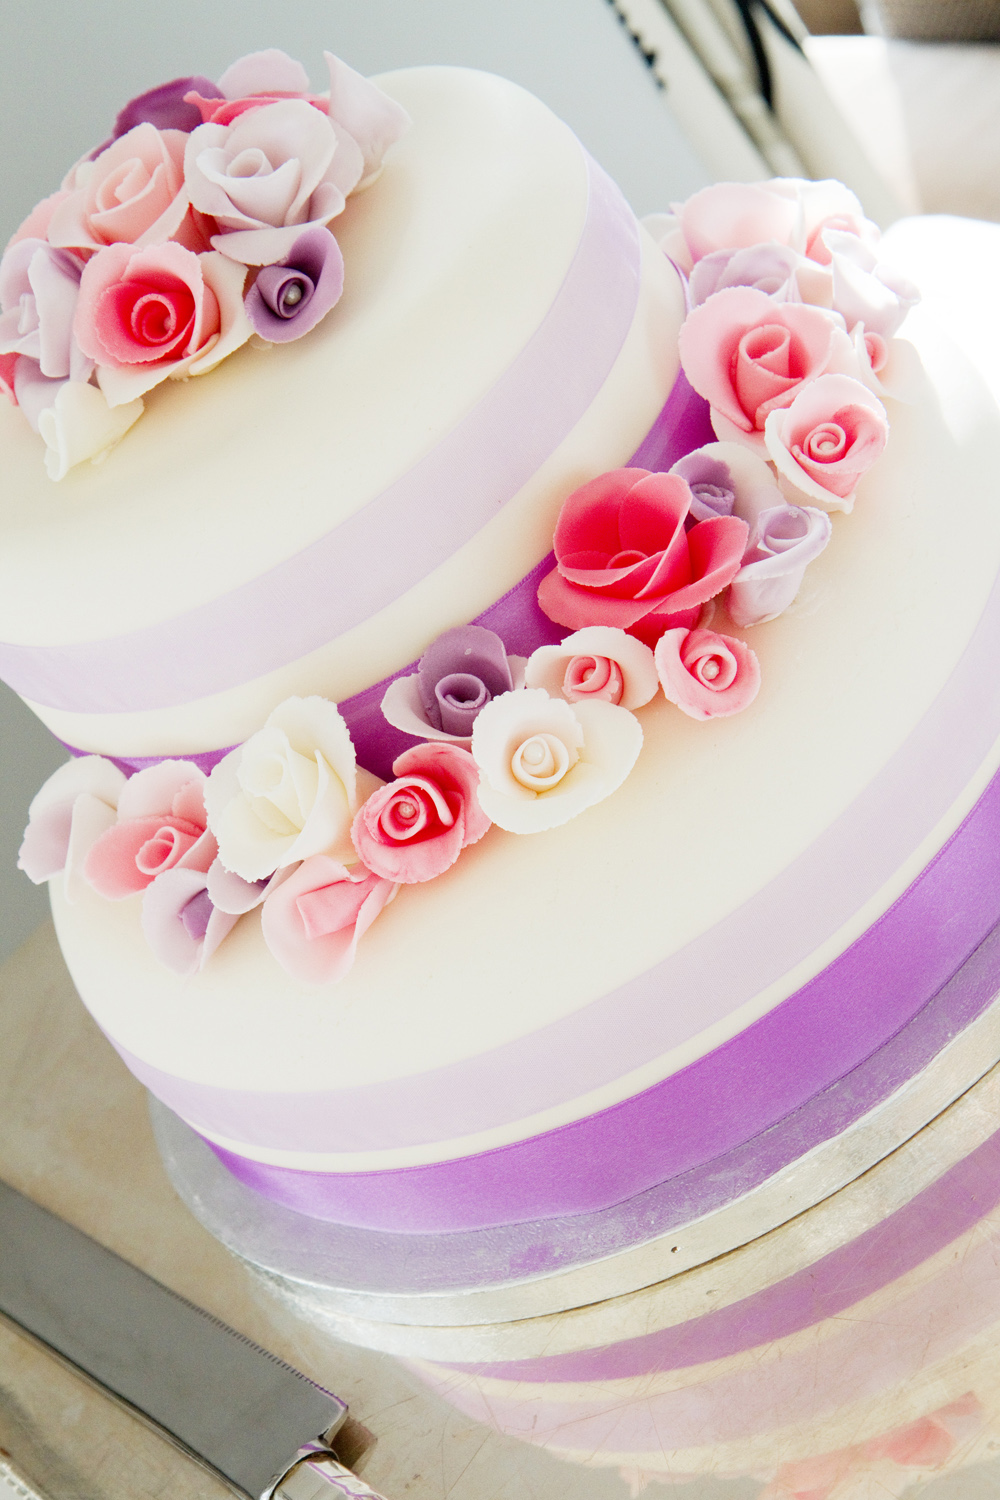 Pastel Flowers Wedding Cake, Helen England Photography, Kent, U.K